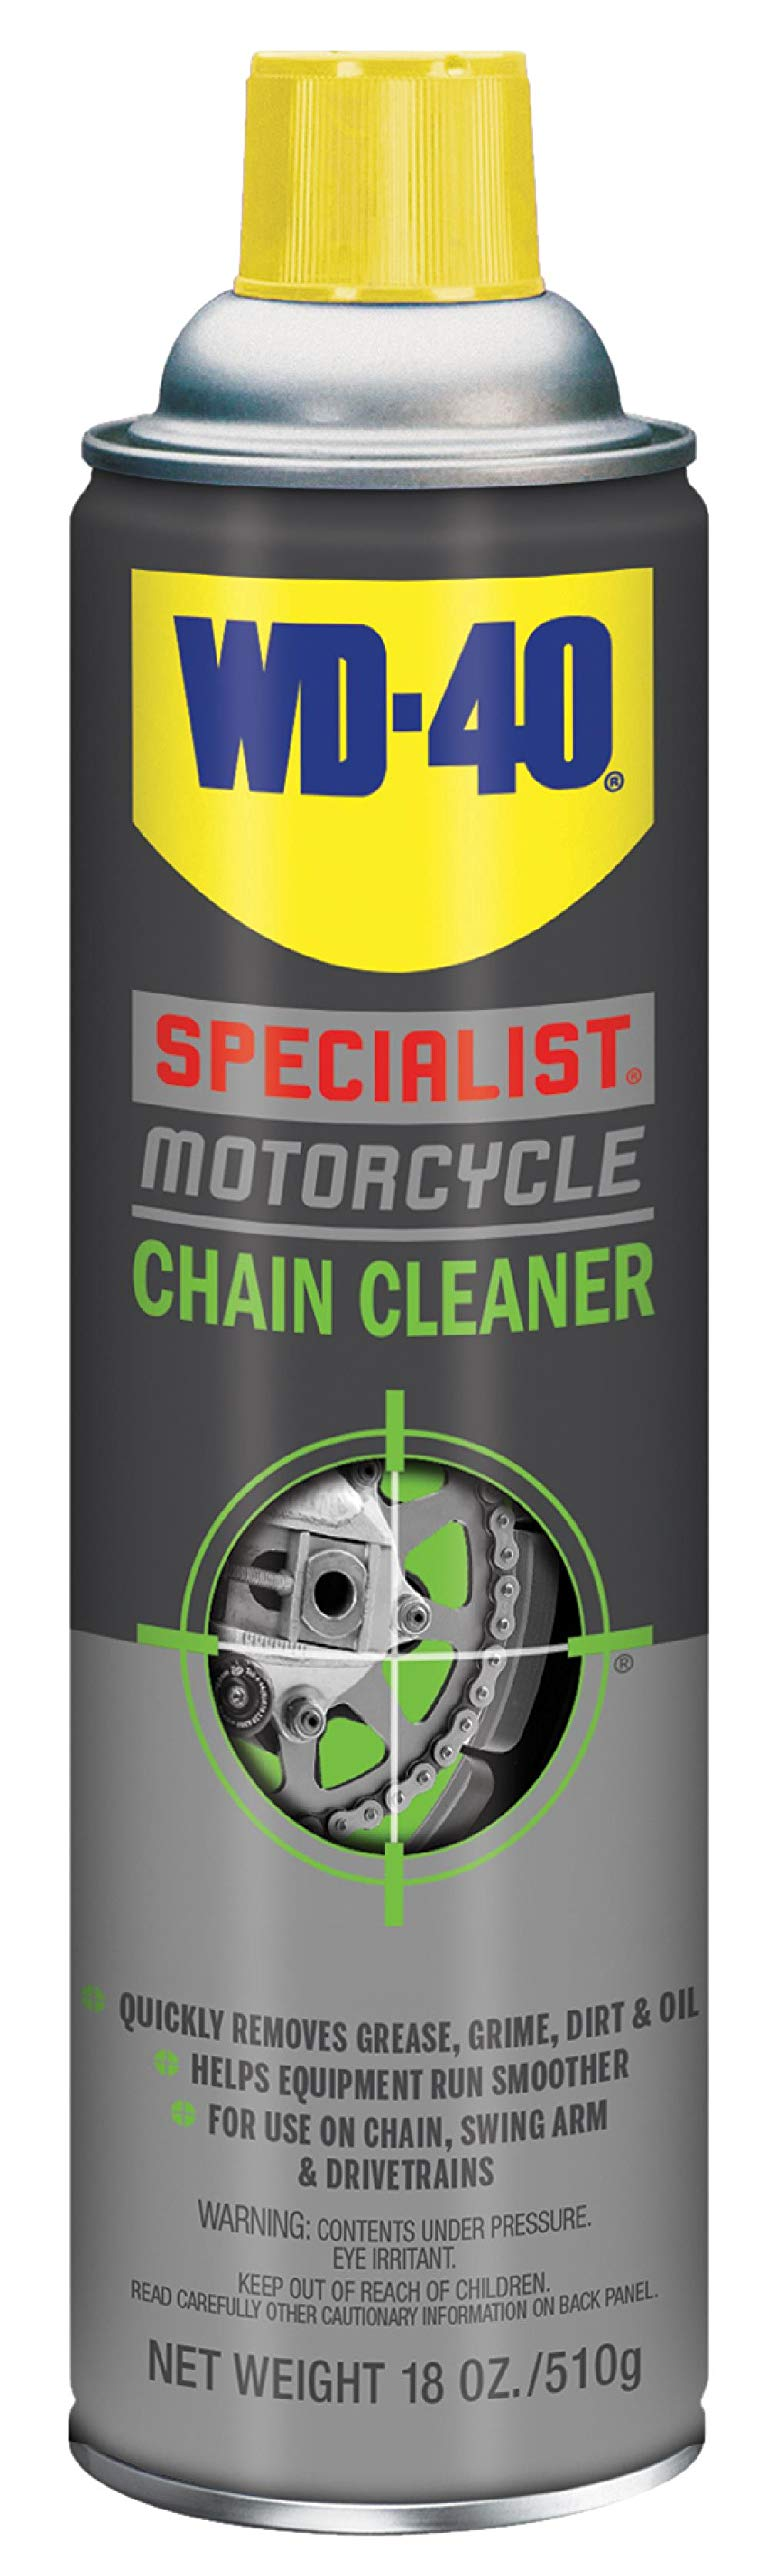 WD-40 Specialist Motorcycle Chain Cleaner, 18 OZ